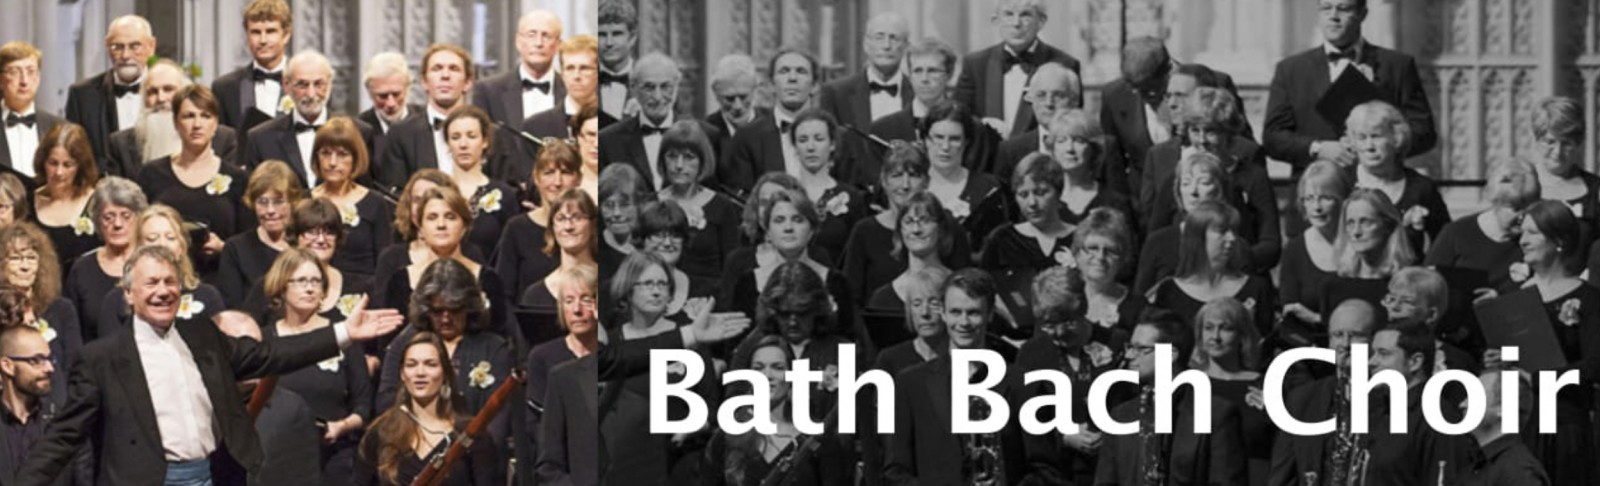 bathbachchoir2